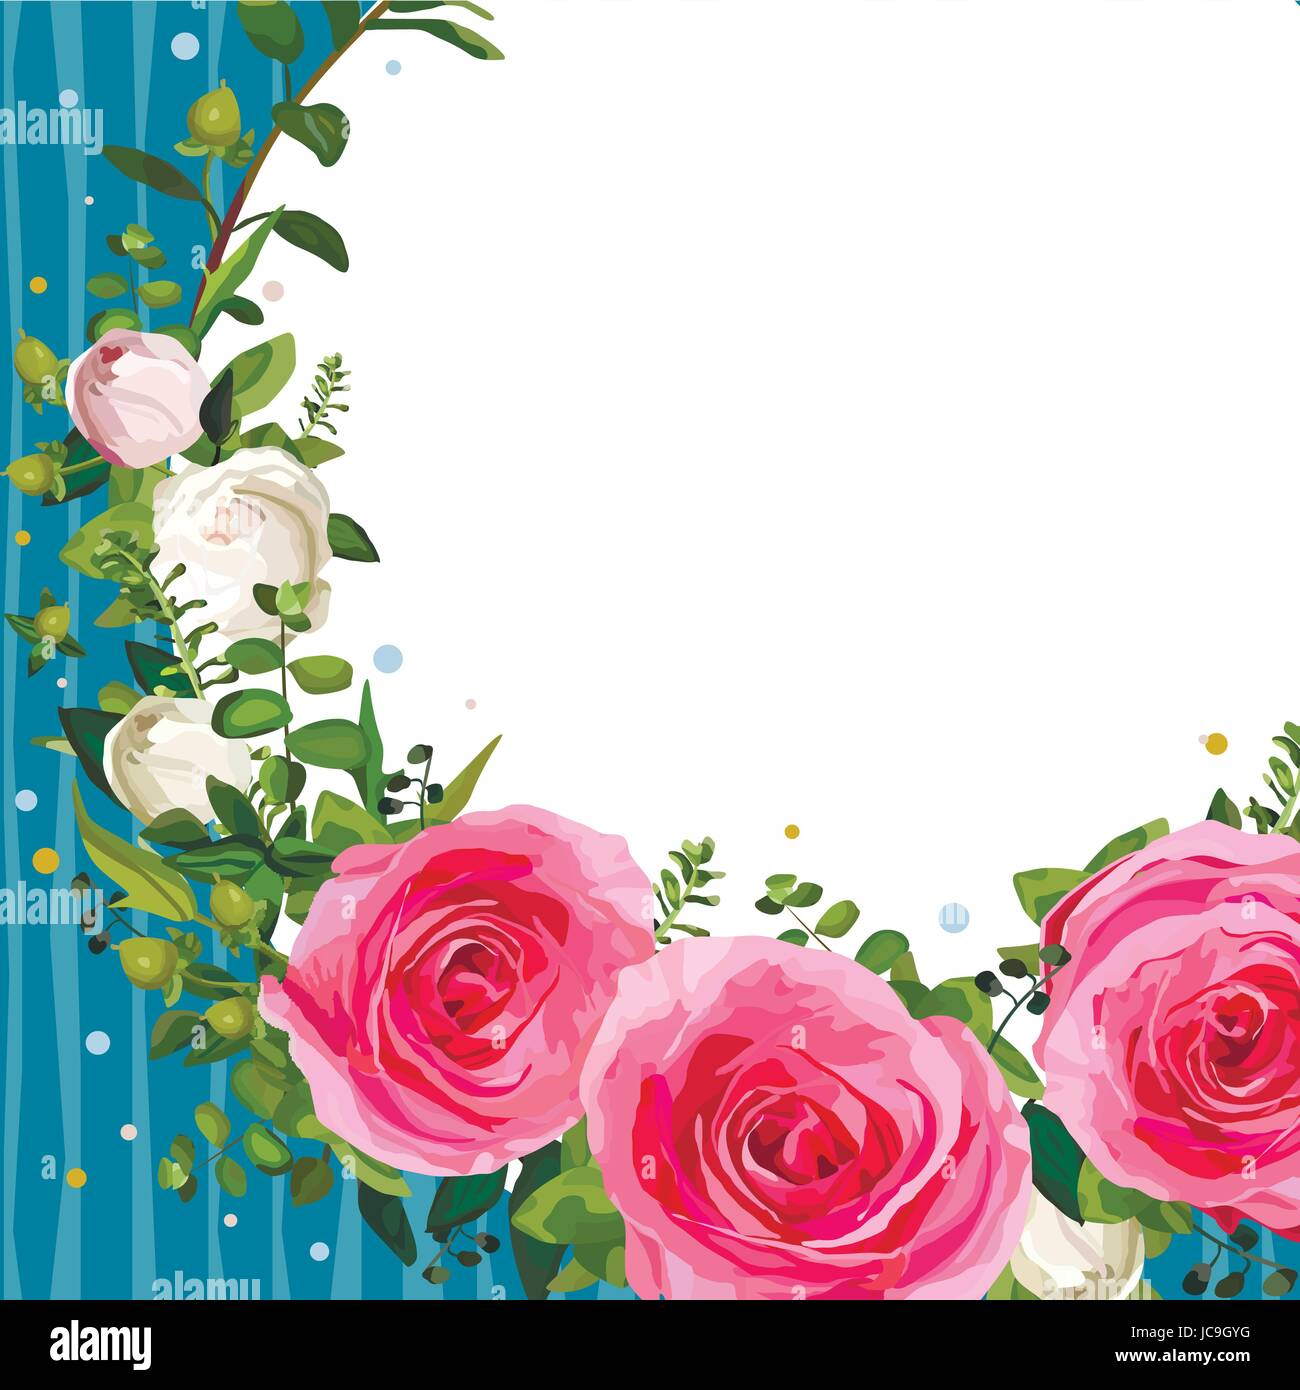 Flower pink rose leaves beautiful lovely spring summer bouquet flower pink rose leaves beautiful lovely spring summer bouquet vector illustration top view square fine elegant watercolor design white background sa izmirmasajfo